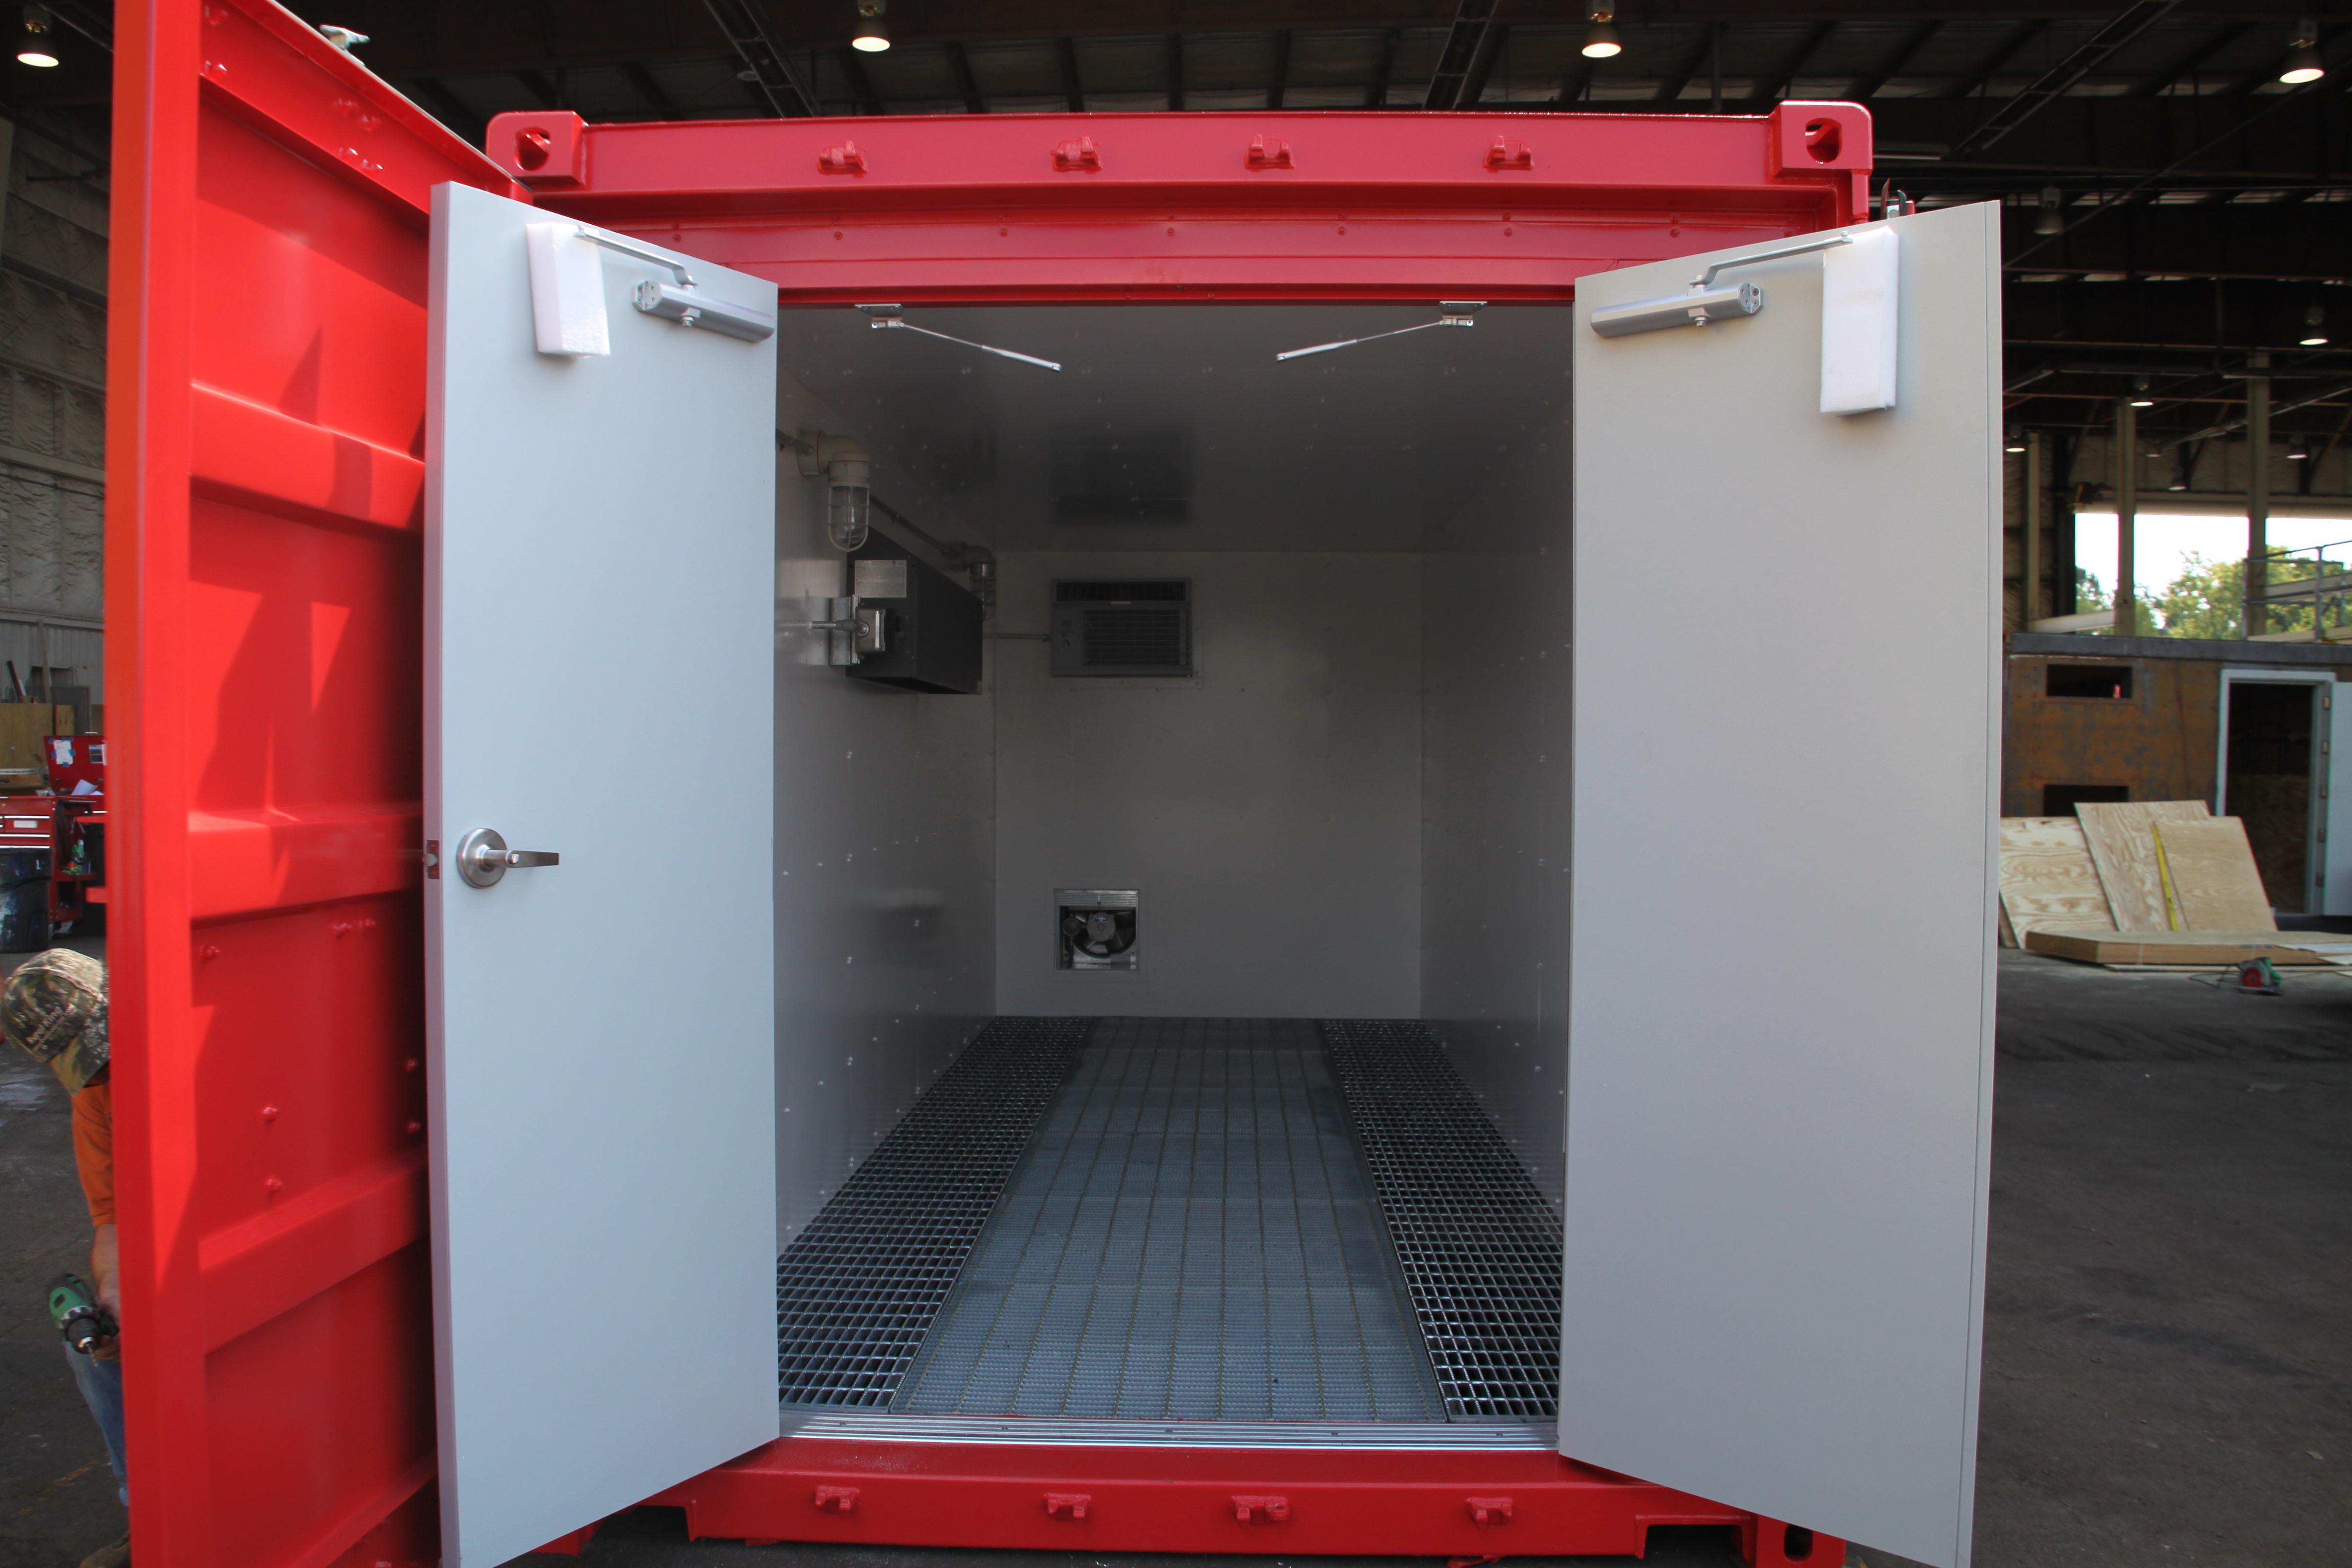 Hazmat chemical storage, portable hazmat chemical storage, chemical storage for hazmat, portable chemical storage for hazmat, shipping container modification for hazmat storage, hazmat shipping container modification storage, hazmat shipping container modification storage, dropbox inc., DropBox Inc.